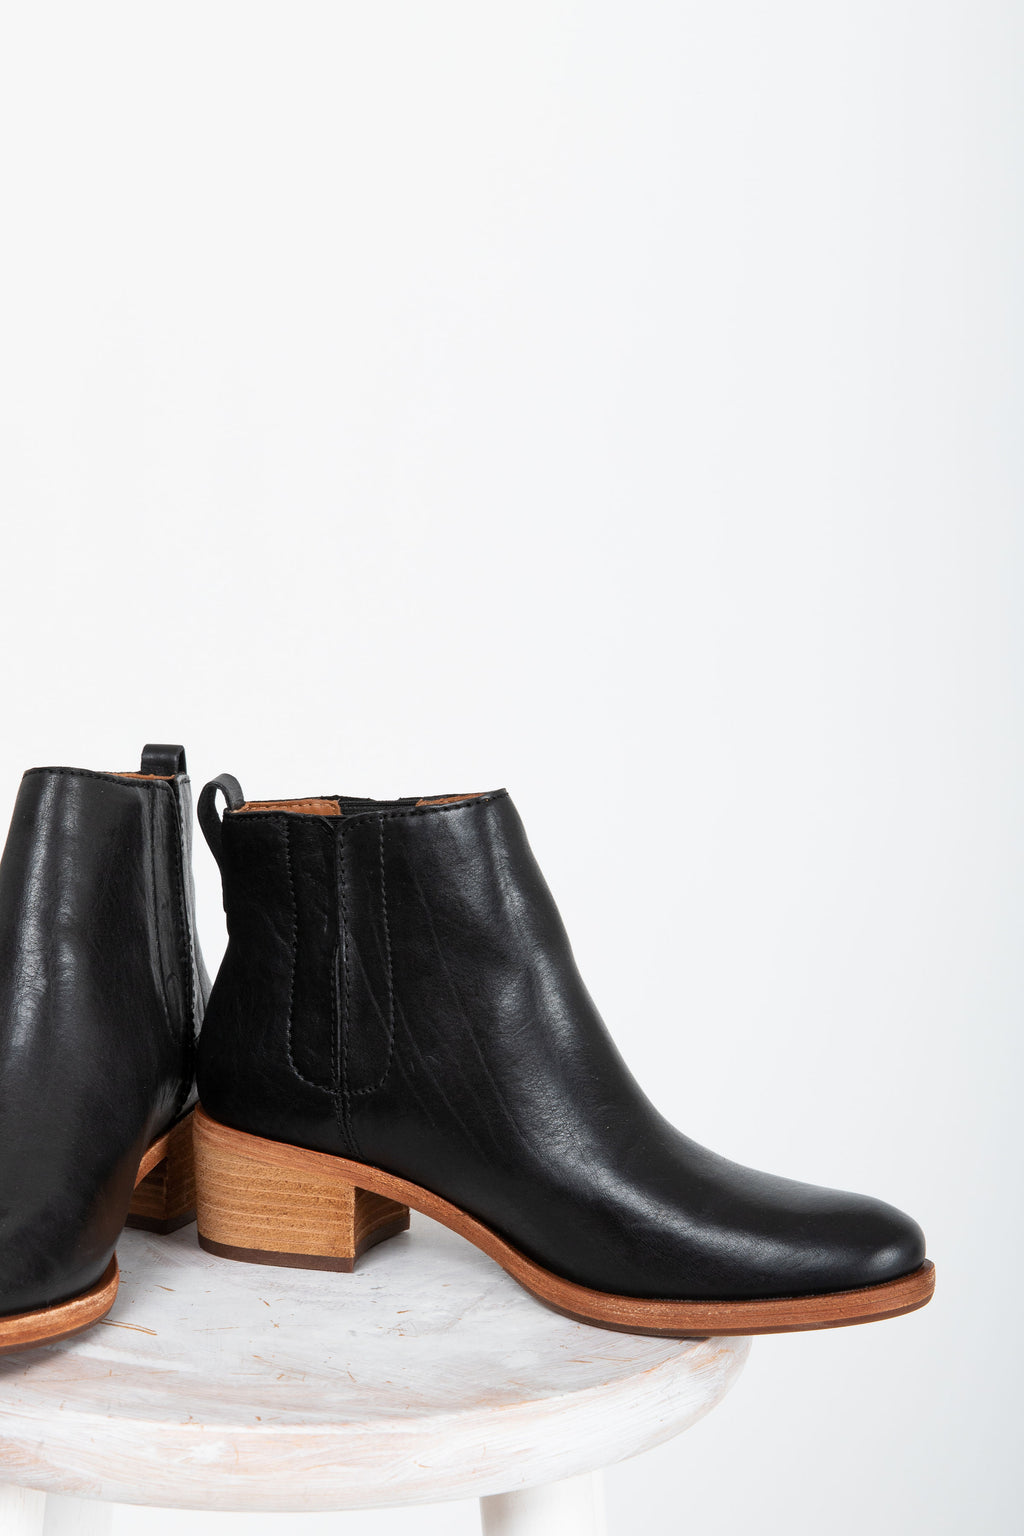 Korkease: Mindo Boot in Black